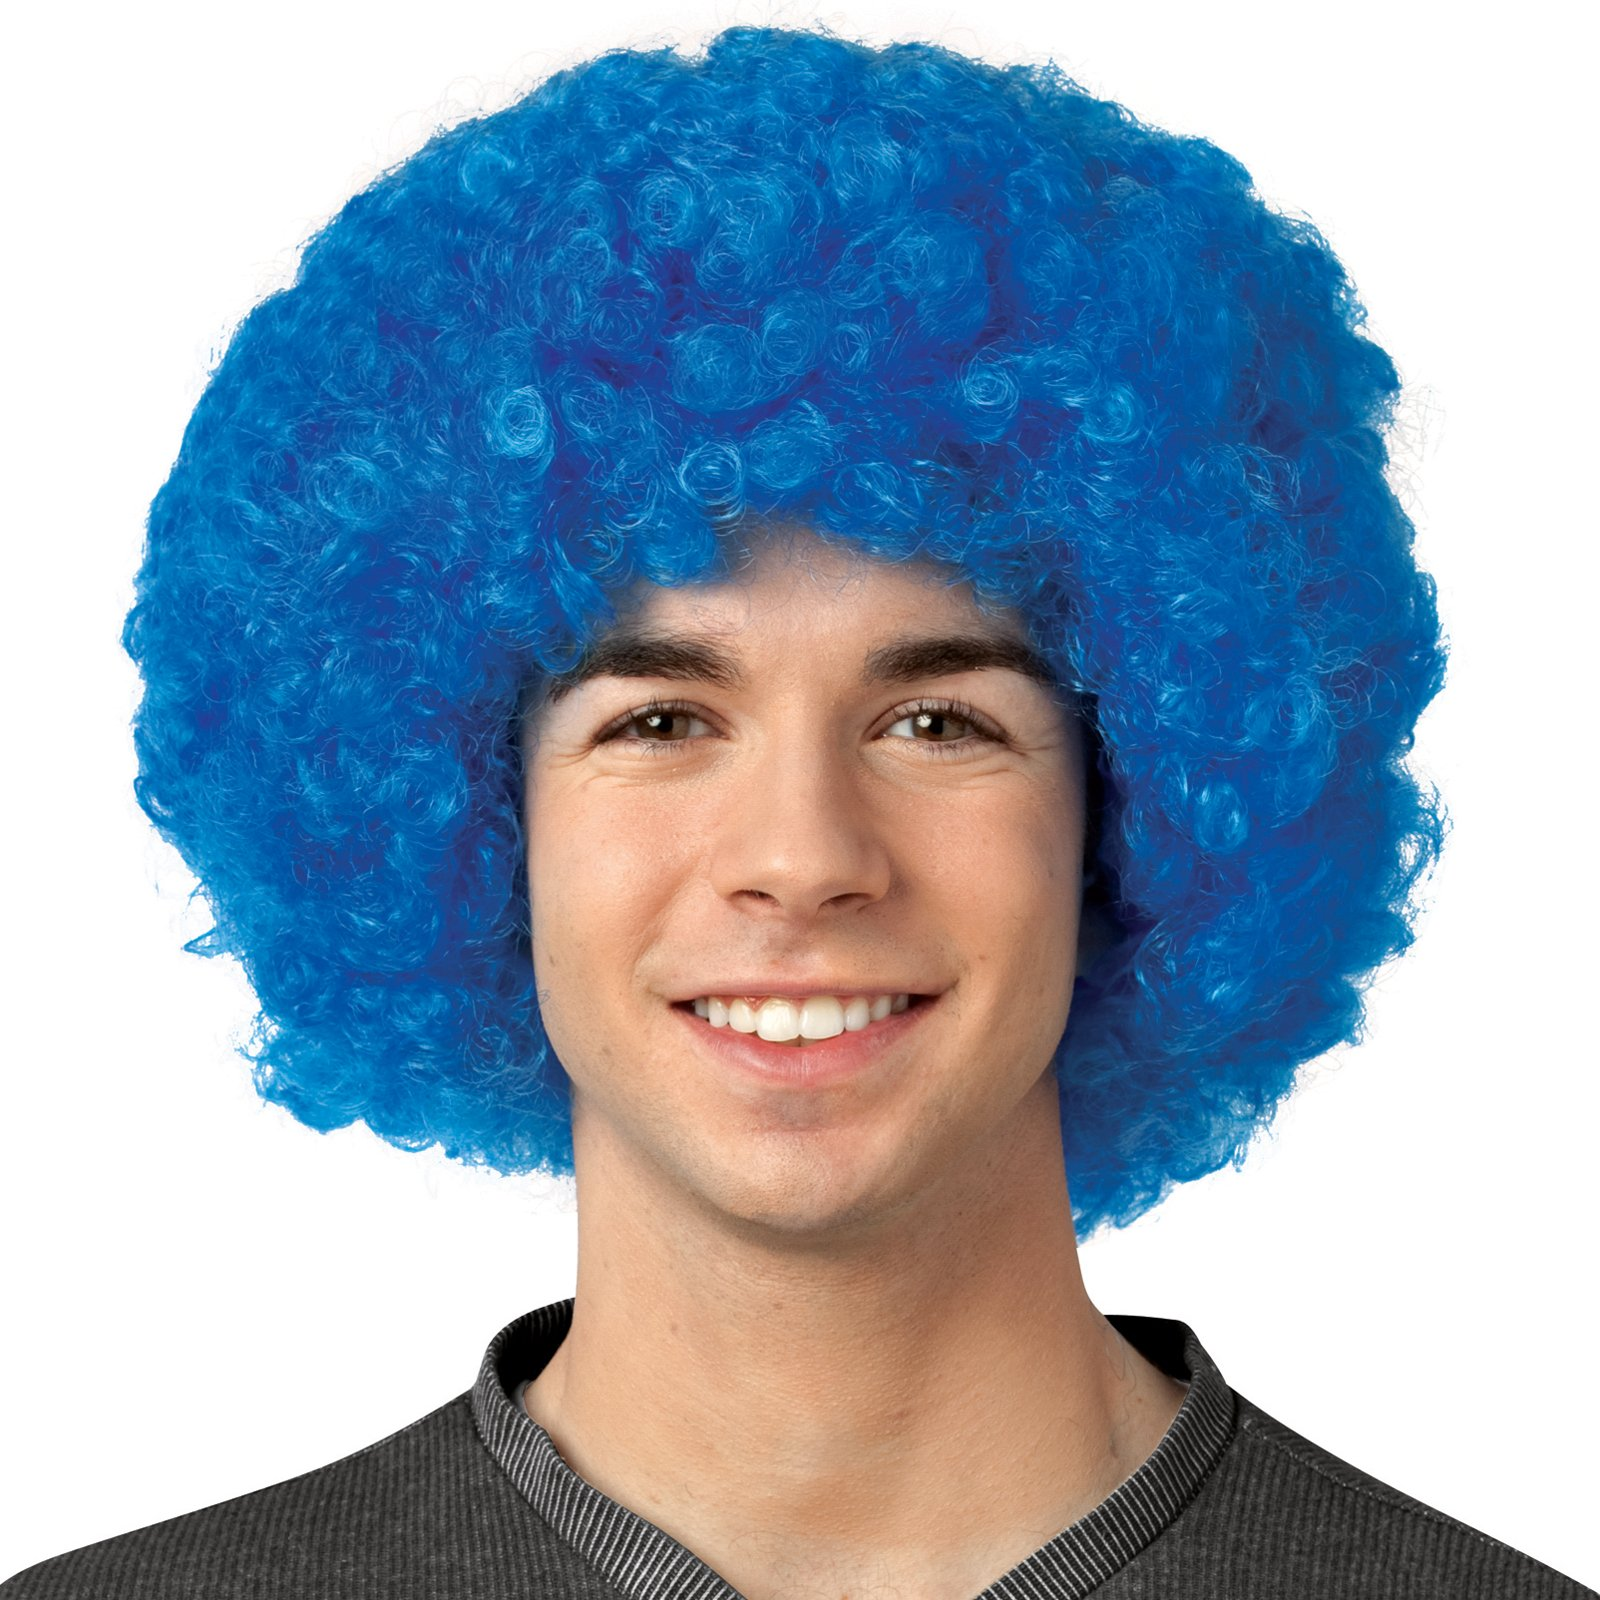 Crayola - Blue Afro Adult Wig